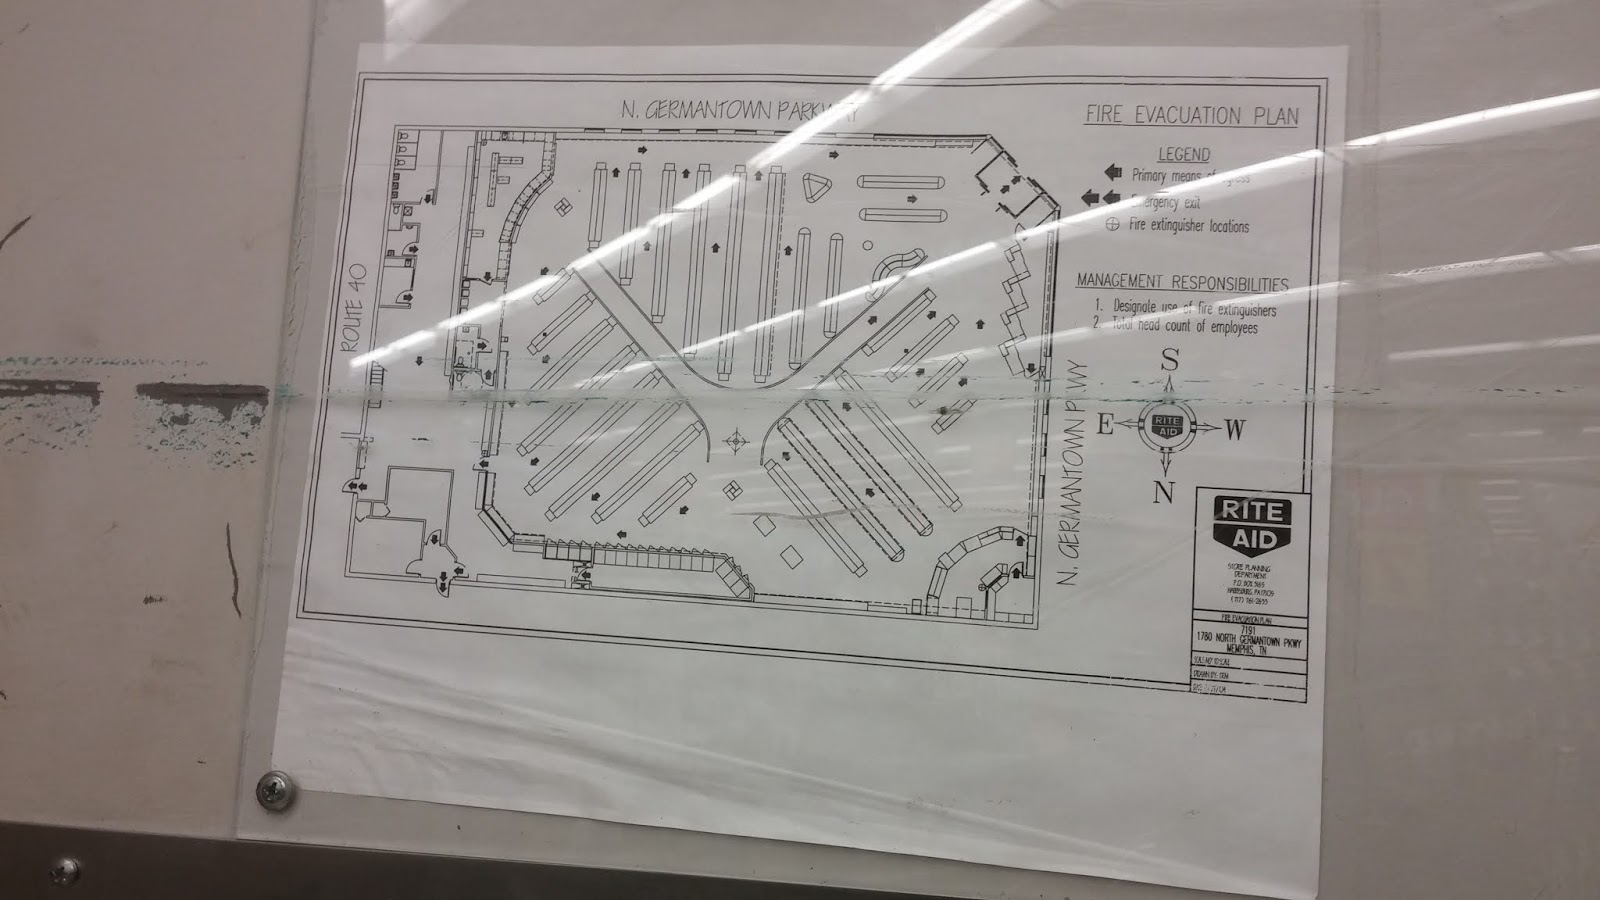 medium resolution of here s the floorplan of this cordova rite aid as seen posted to one of the emergency exit doors the date listed for this schematic is sometime in 2004